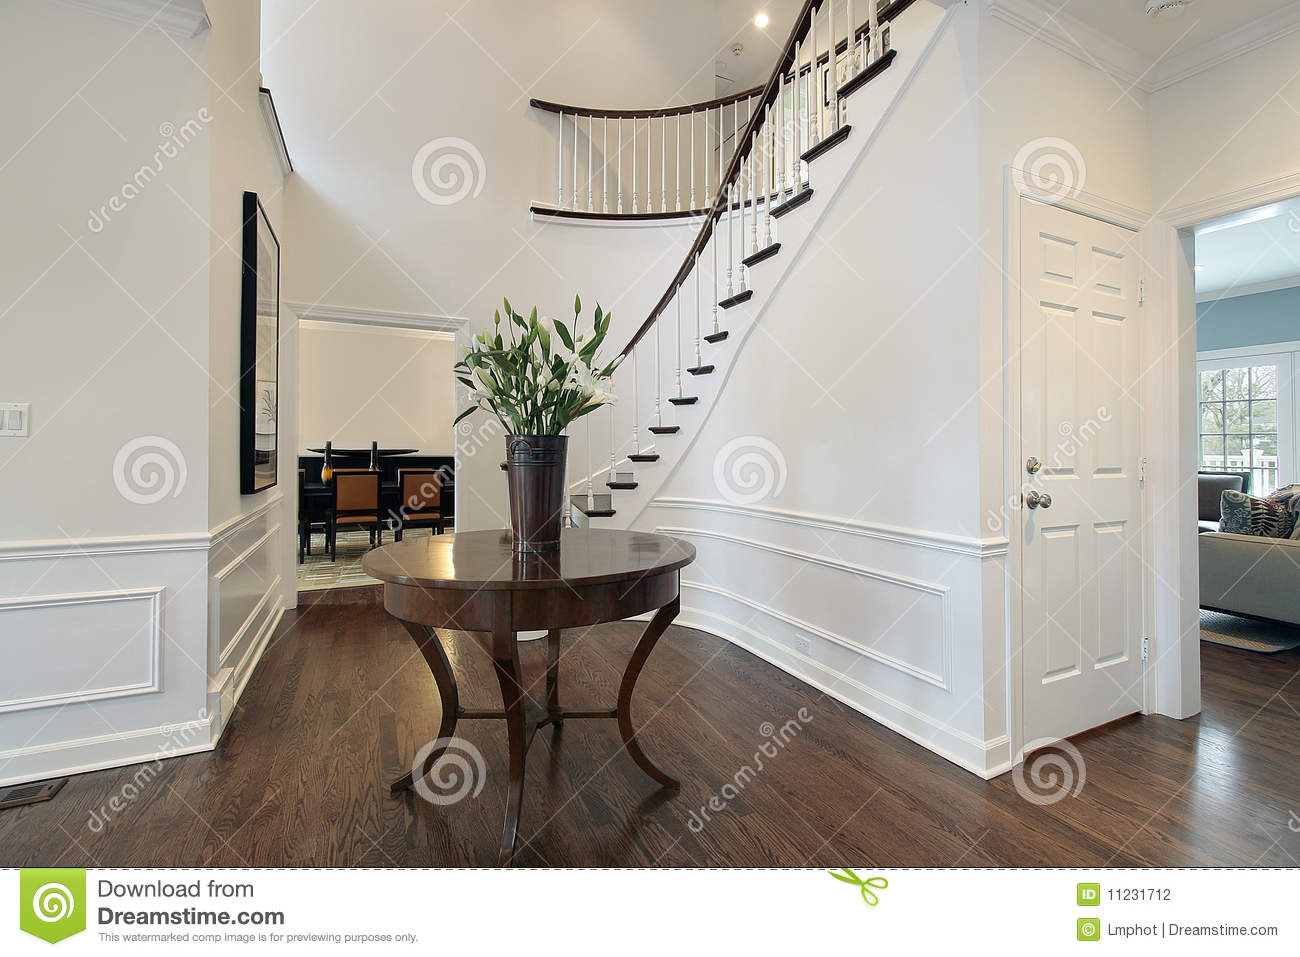 Foyer Curved Staircase Decor : Foyer with curved staircase stock photo image